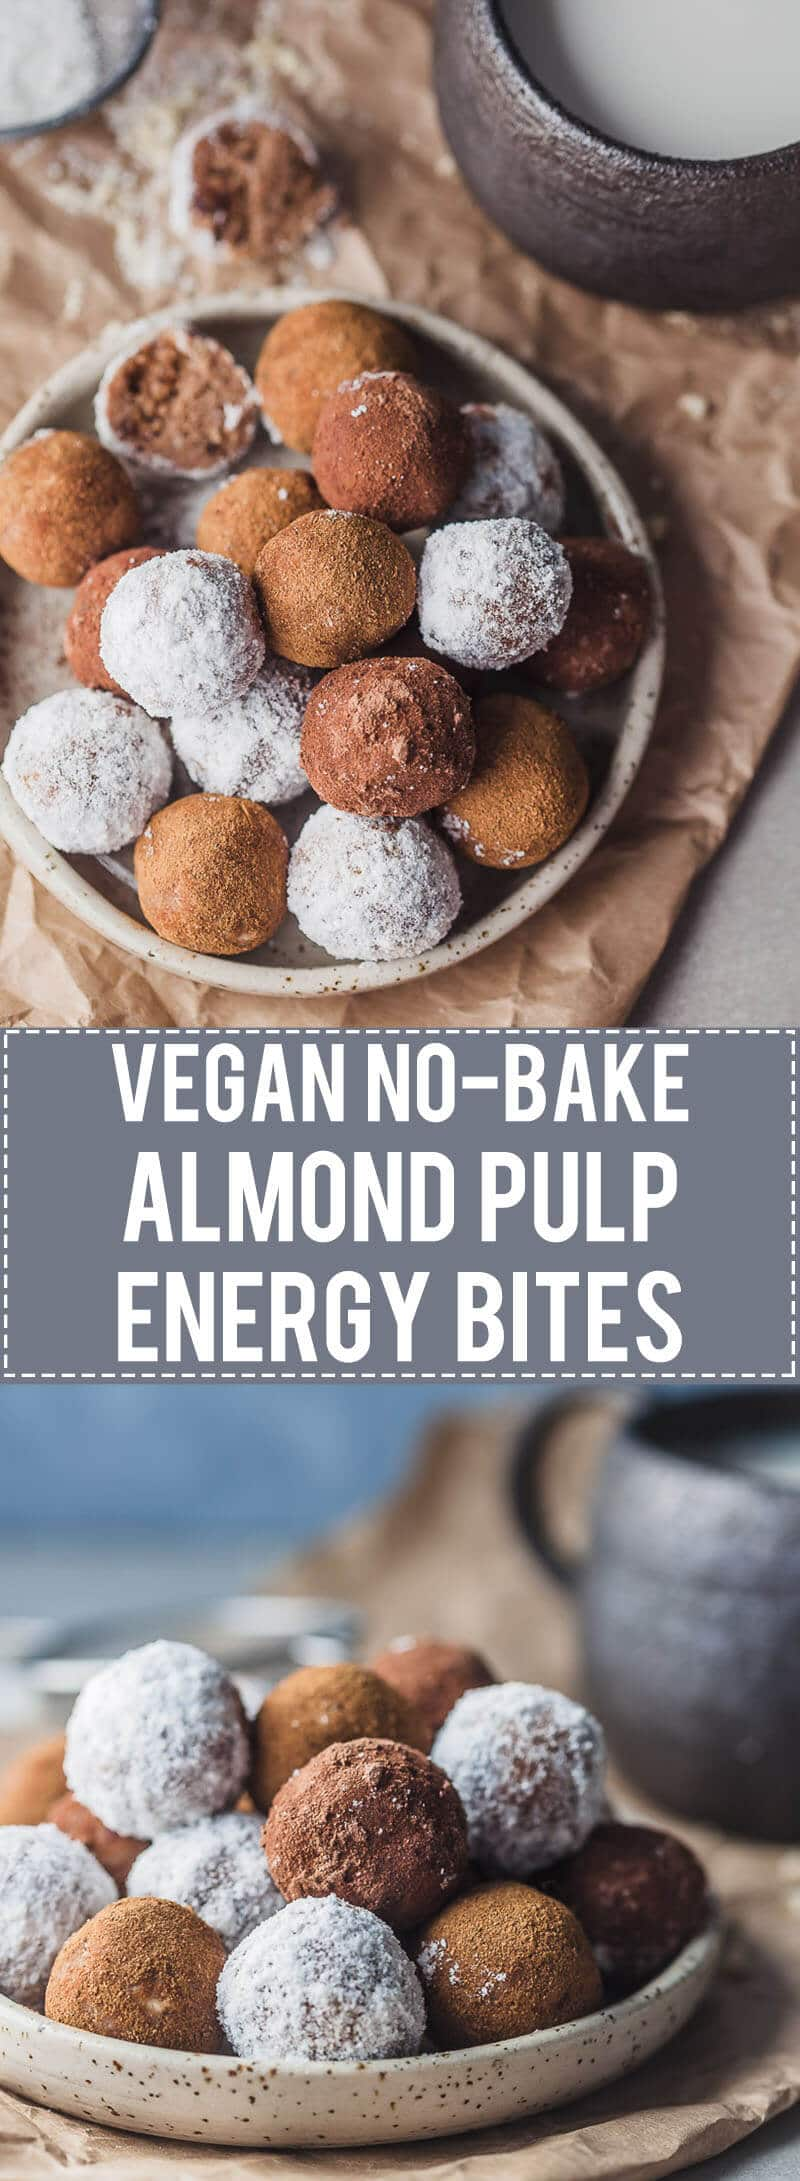 No-bake Almond Pulp Energy Bites are just perfect for using up leftover almonds from almond milk. Vegan & Gluten-Free!